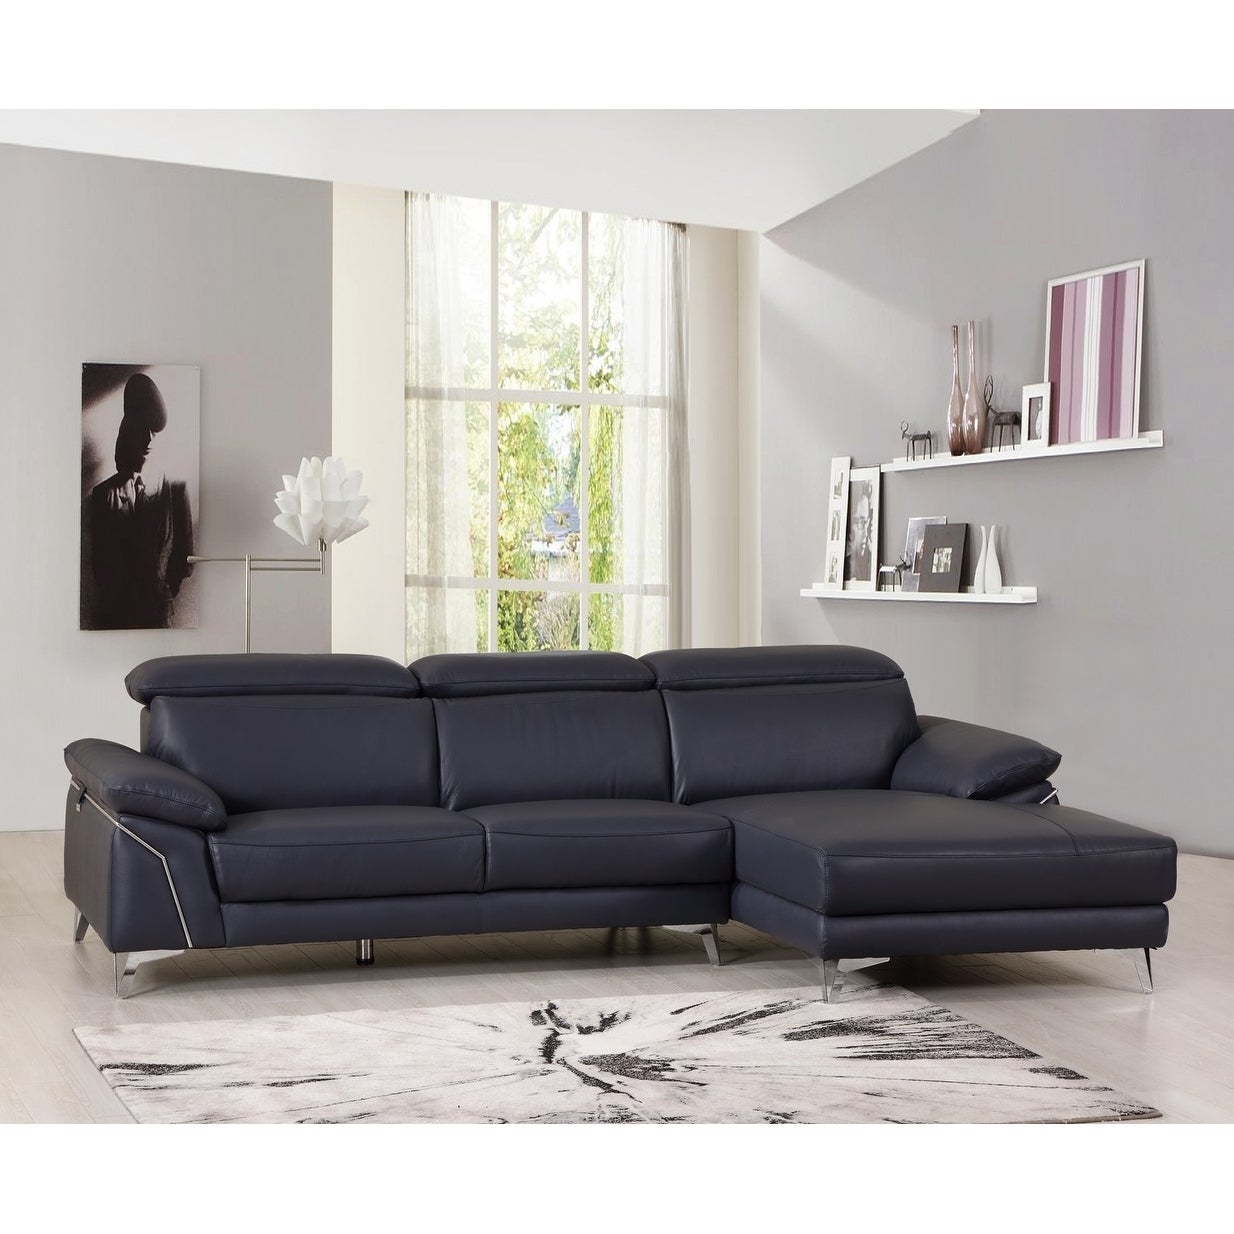 Modern Adjustable Headrest Leather Living Room Sectional Sofa